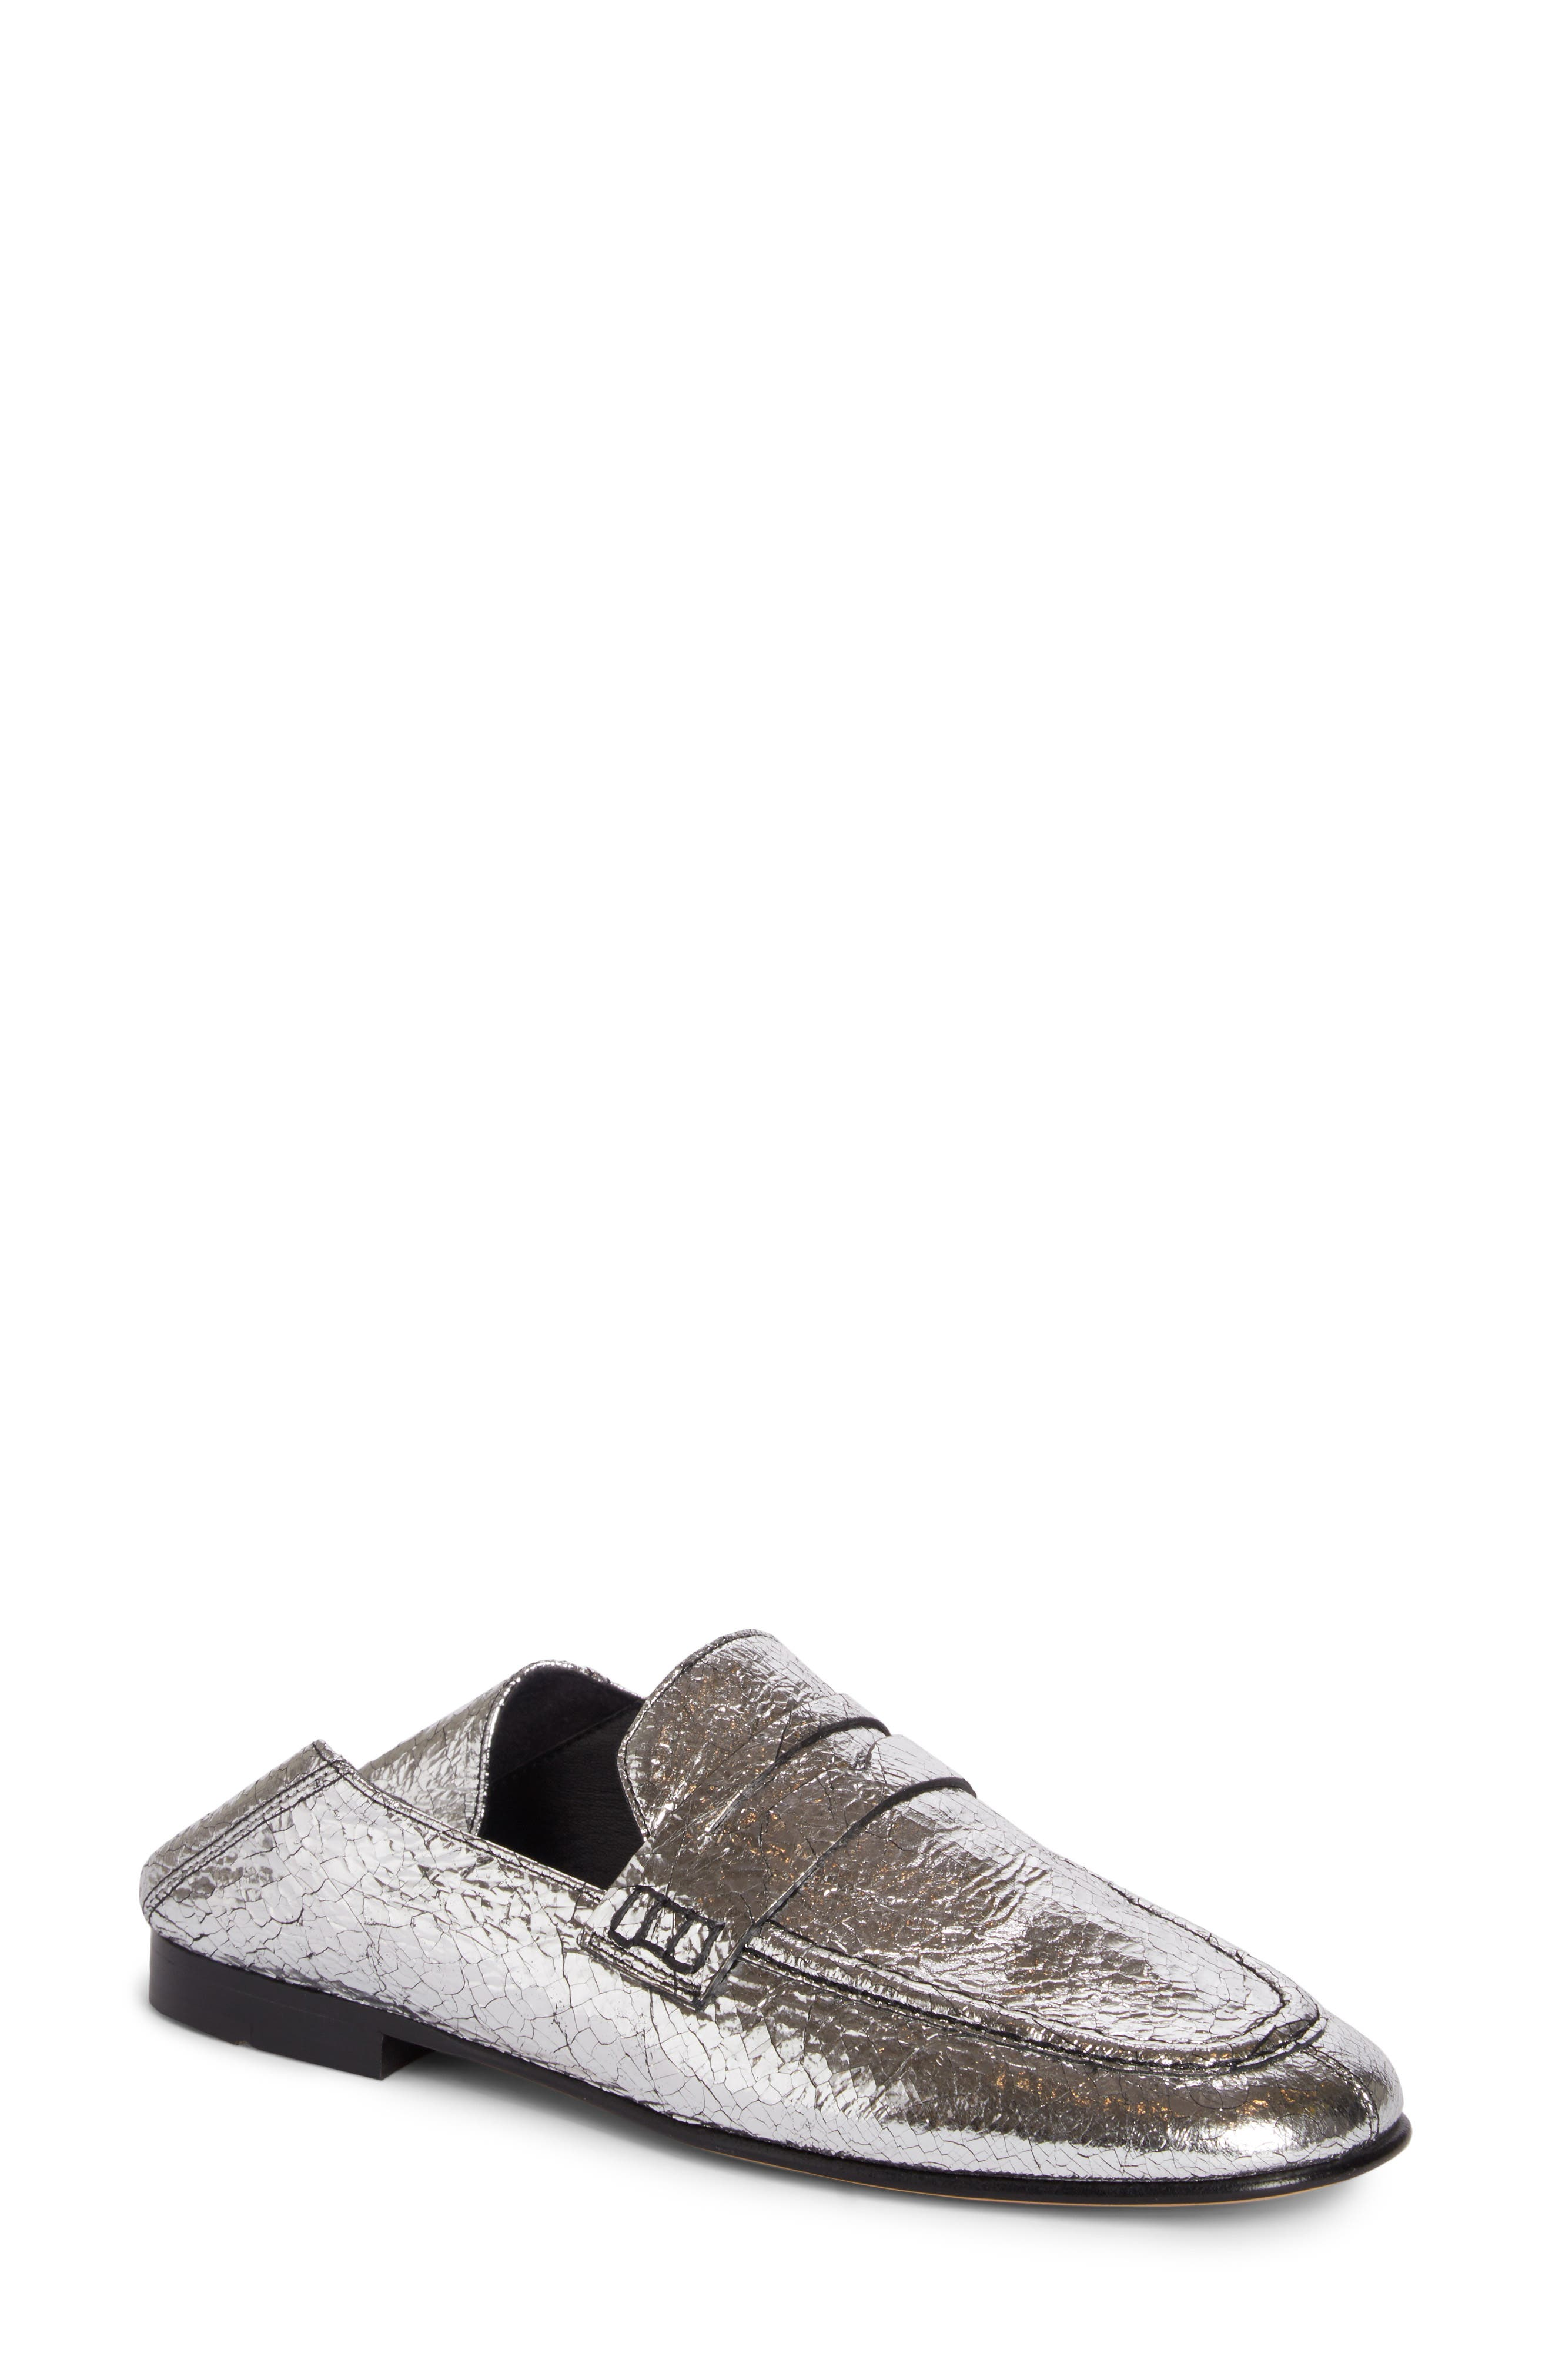 Main Image - Isabel Marant Fezzy Convertible Loafer (Women)